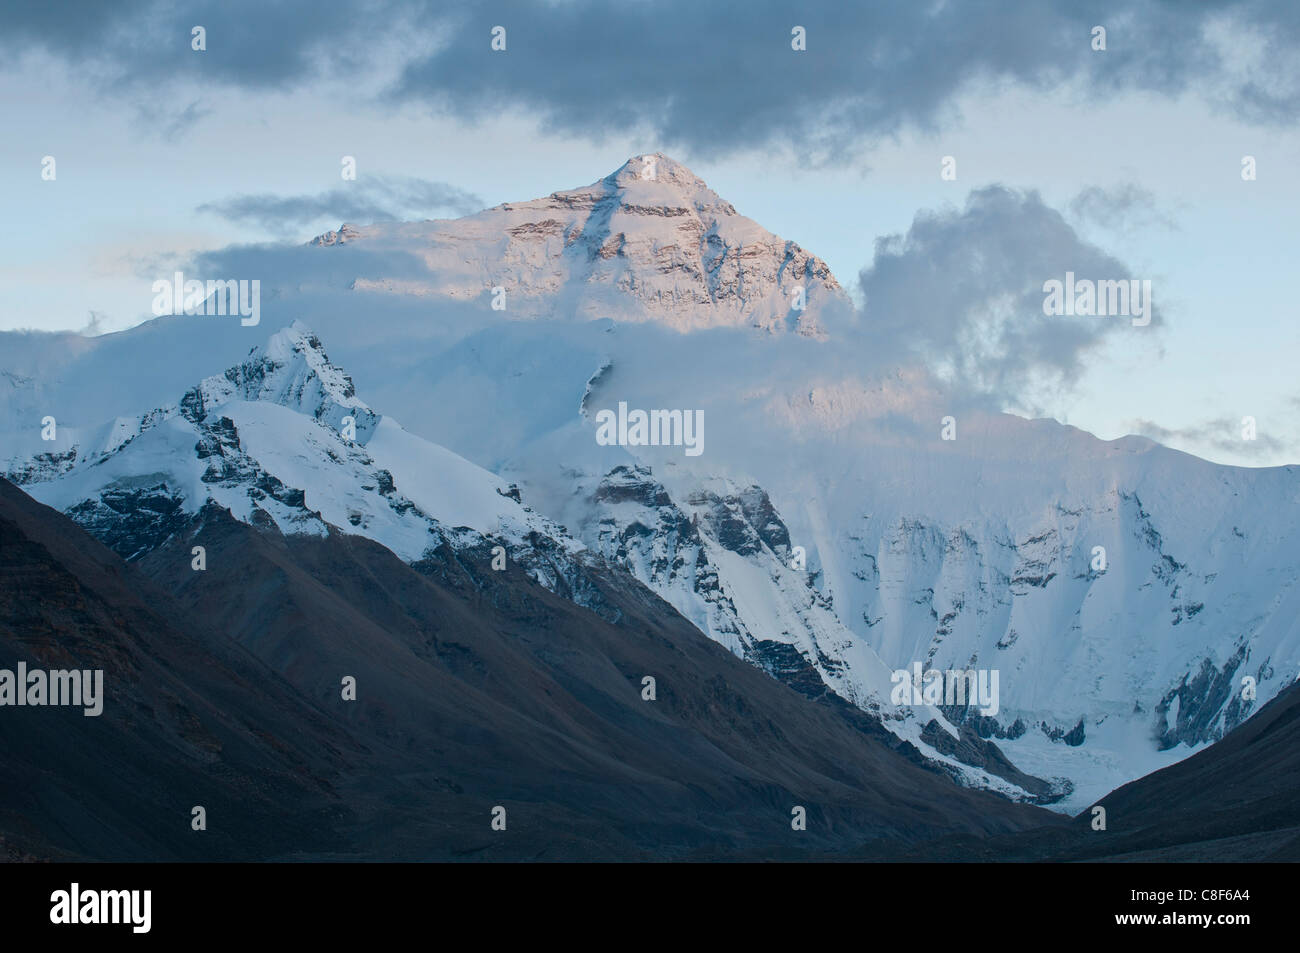 Mount Everest (Mount Sagarmatha, Zhumulangma Peak, the world's highest mountain, 8,848 metres above sea level, - Stock Image